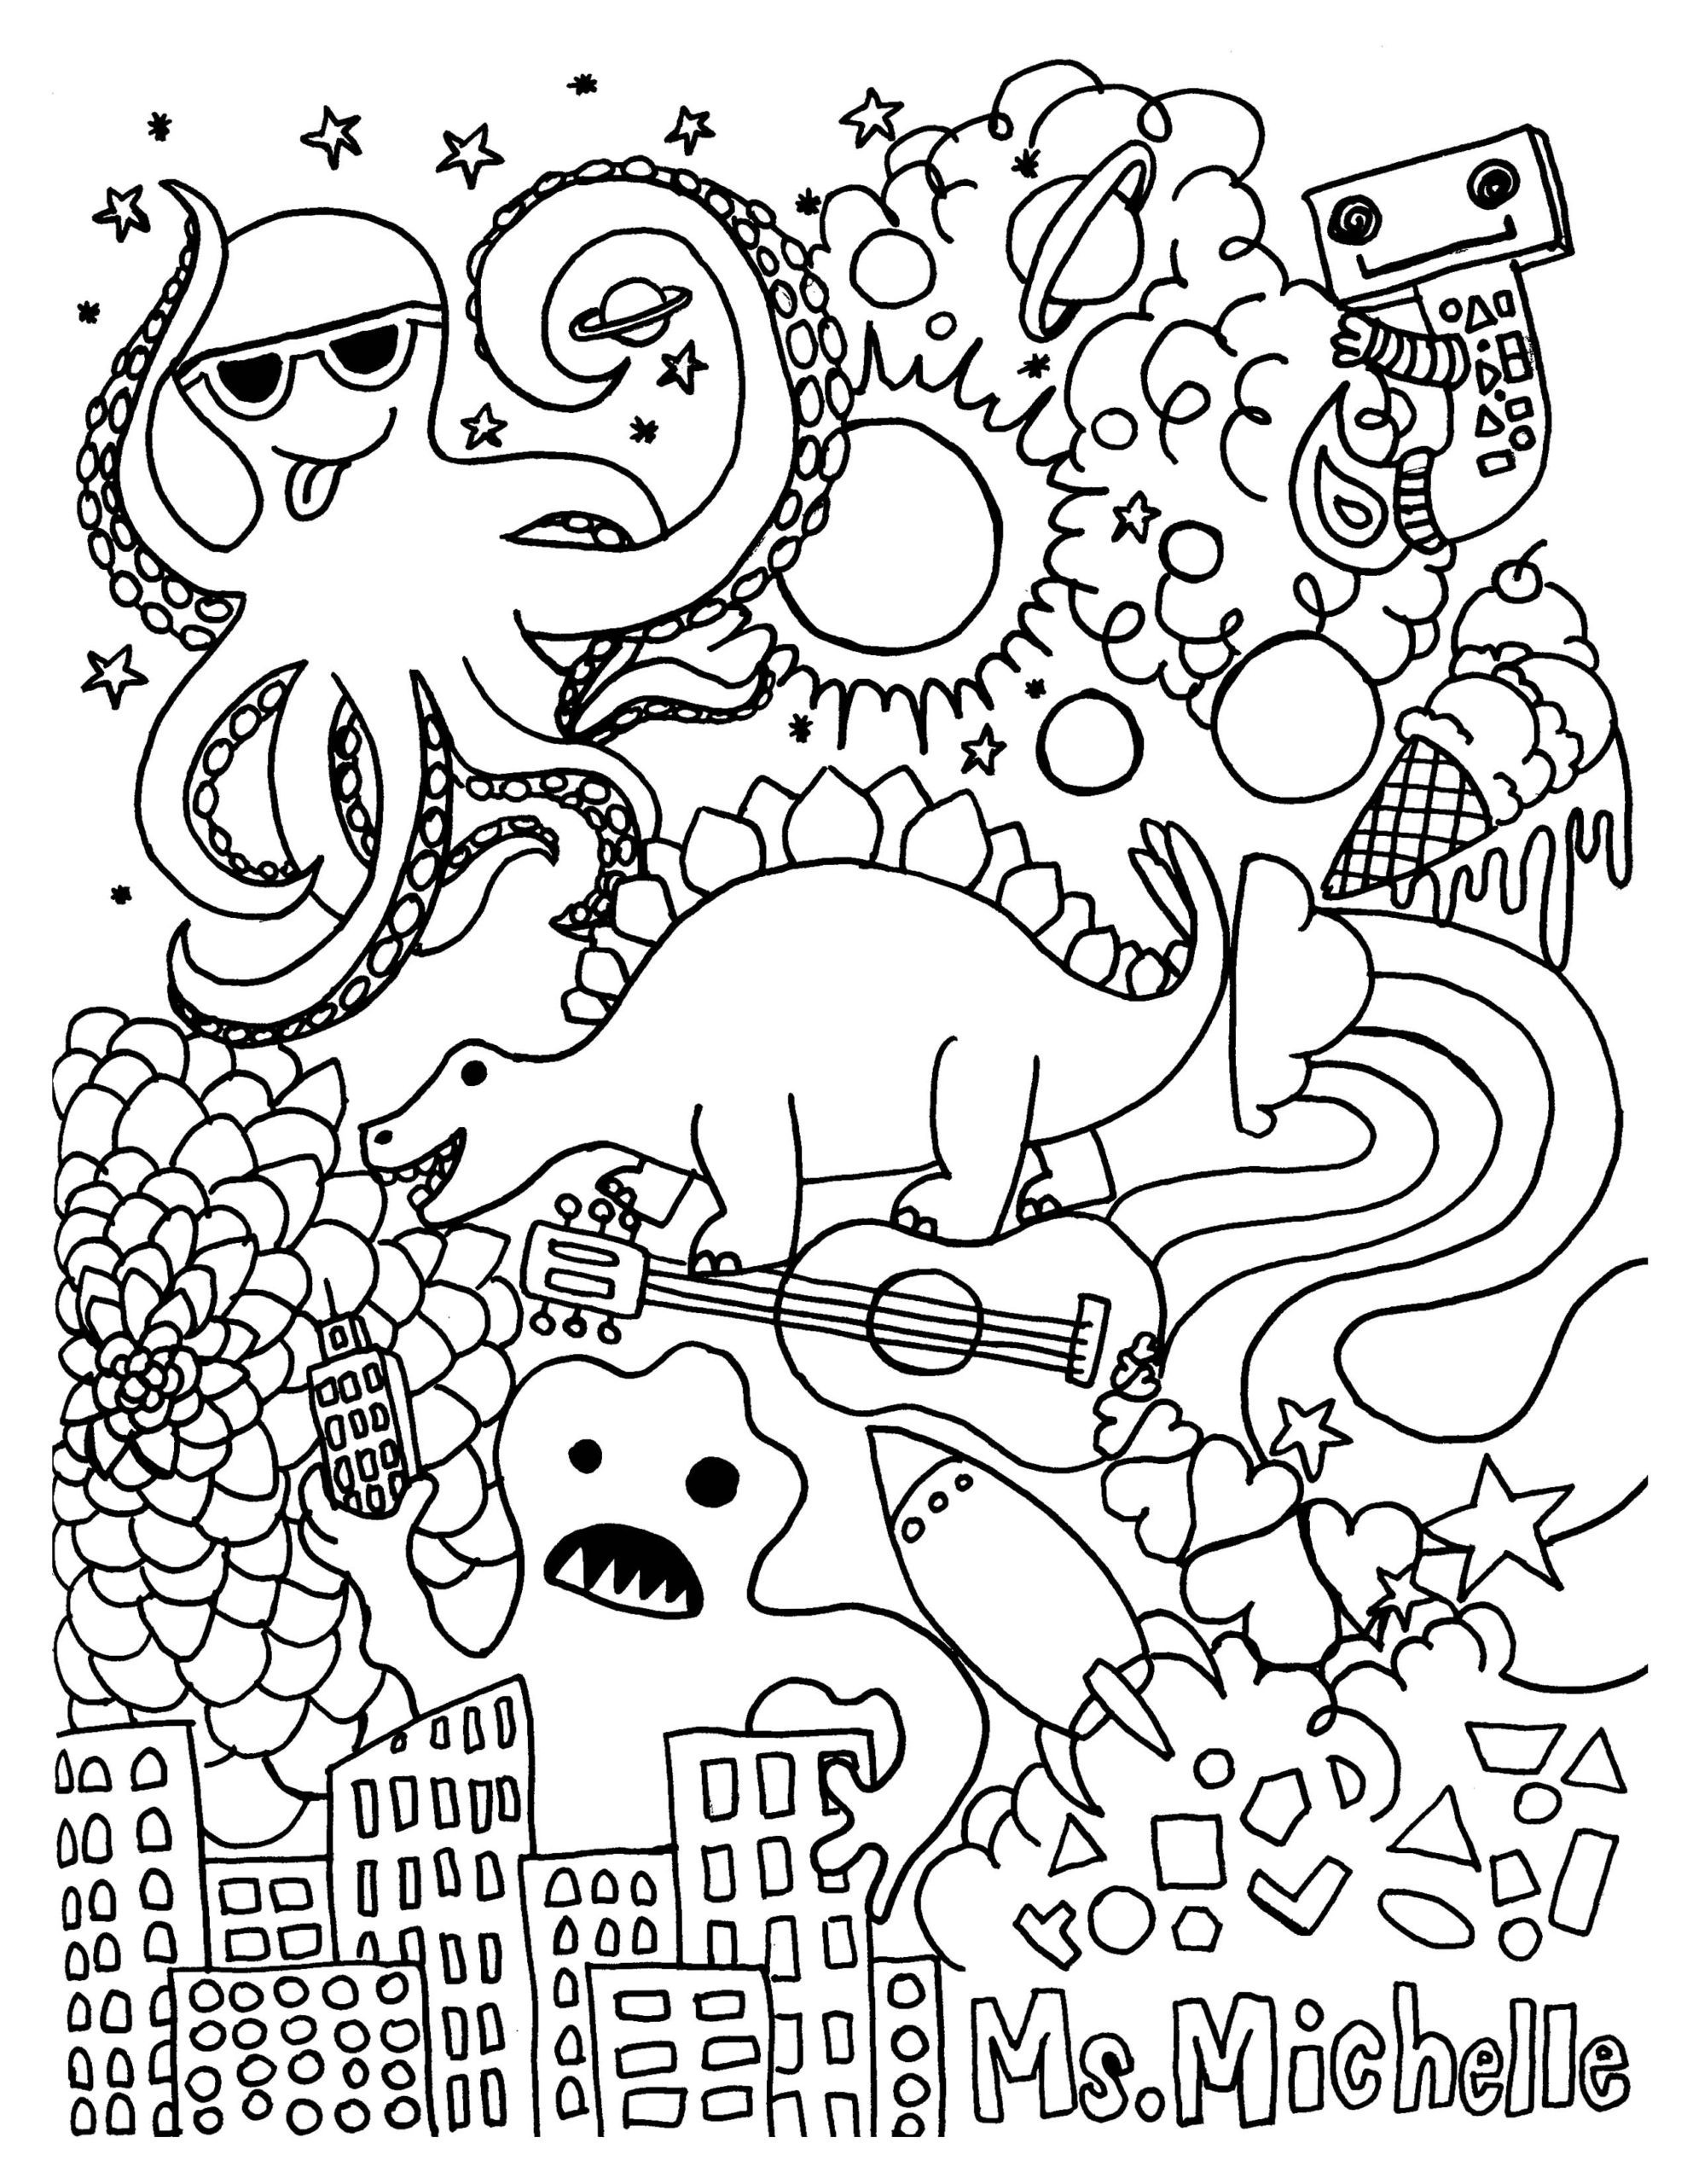 Coloring Worksheets for 3rd Grade Coloring Pages Winter Coloring Sheets for Adults Best